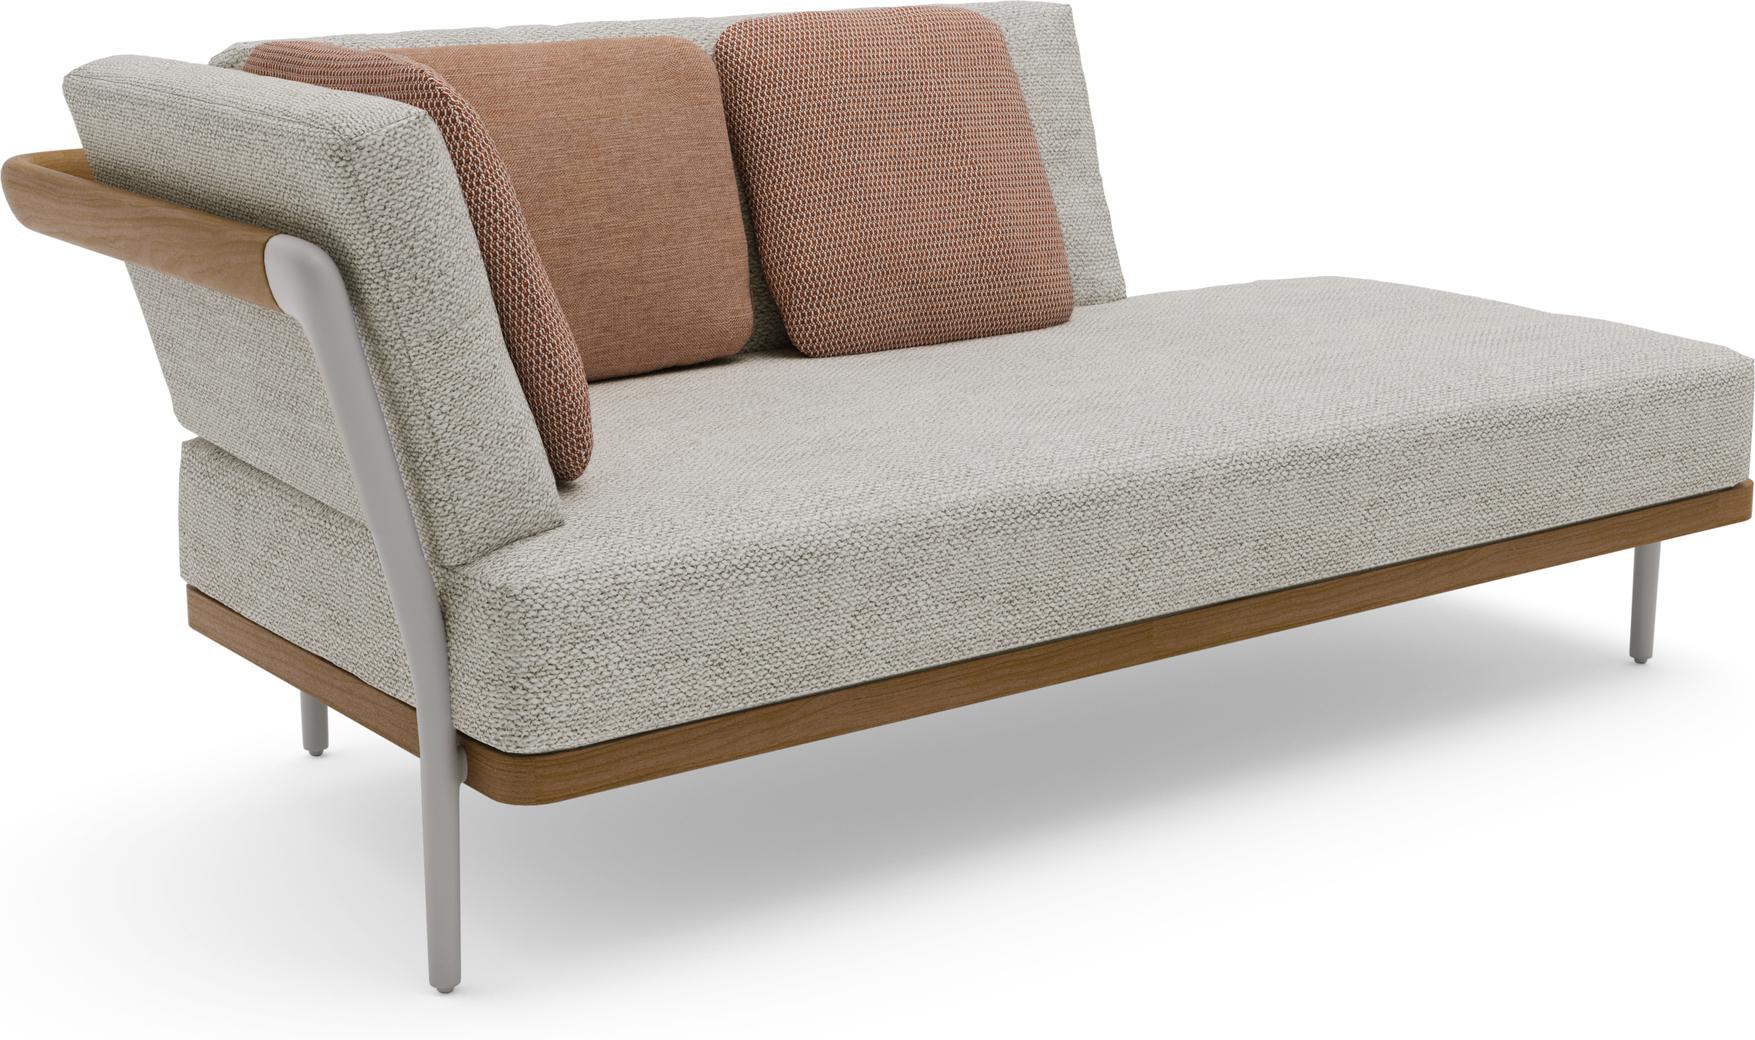 Flex Right corner double end seat - flint - teak